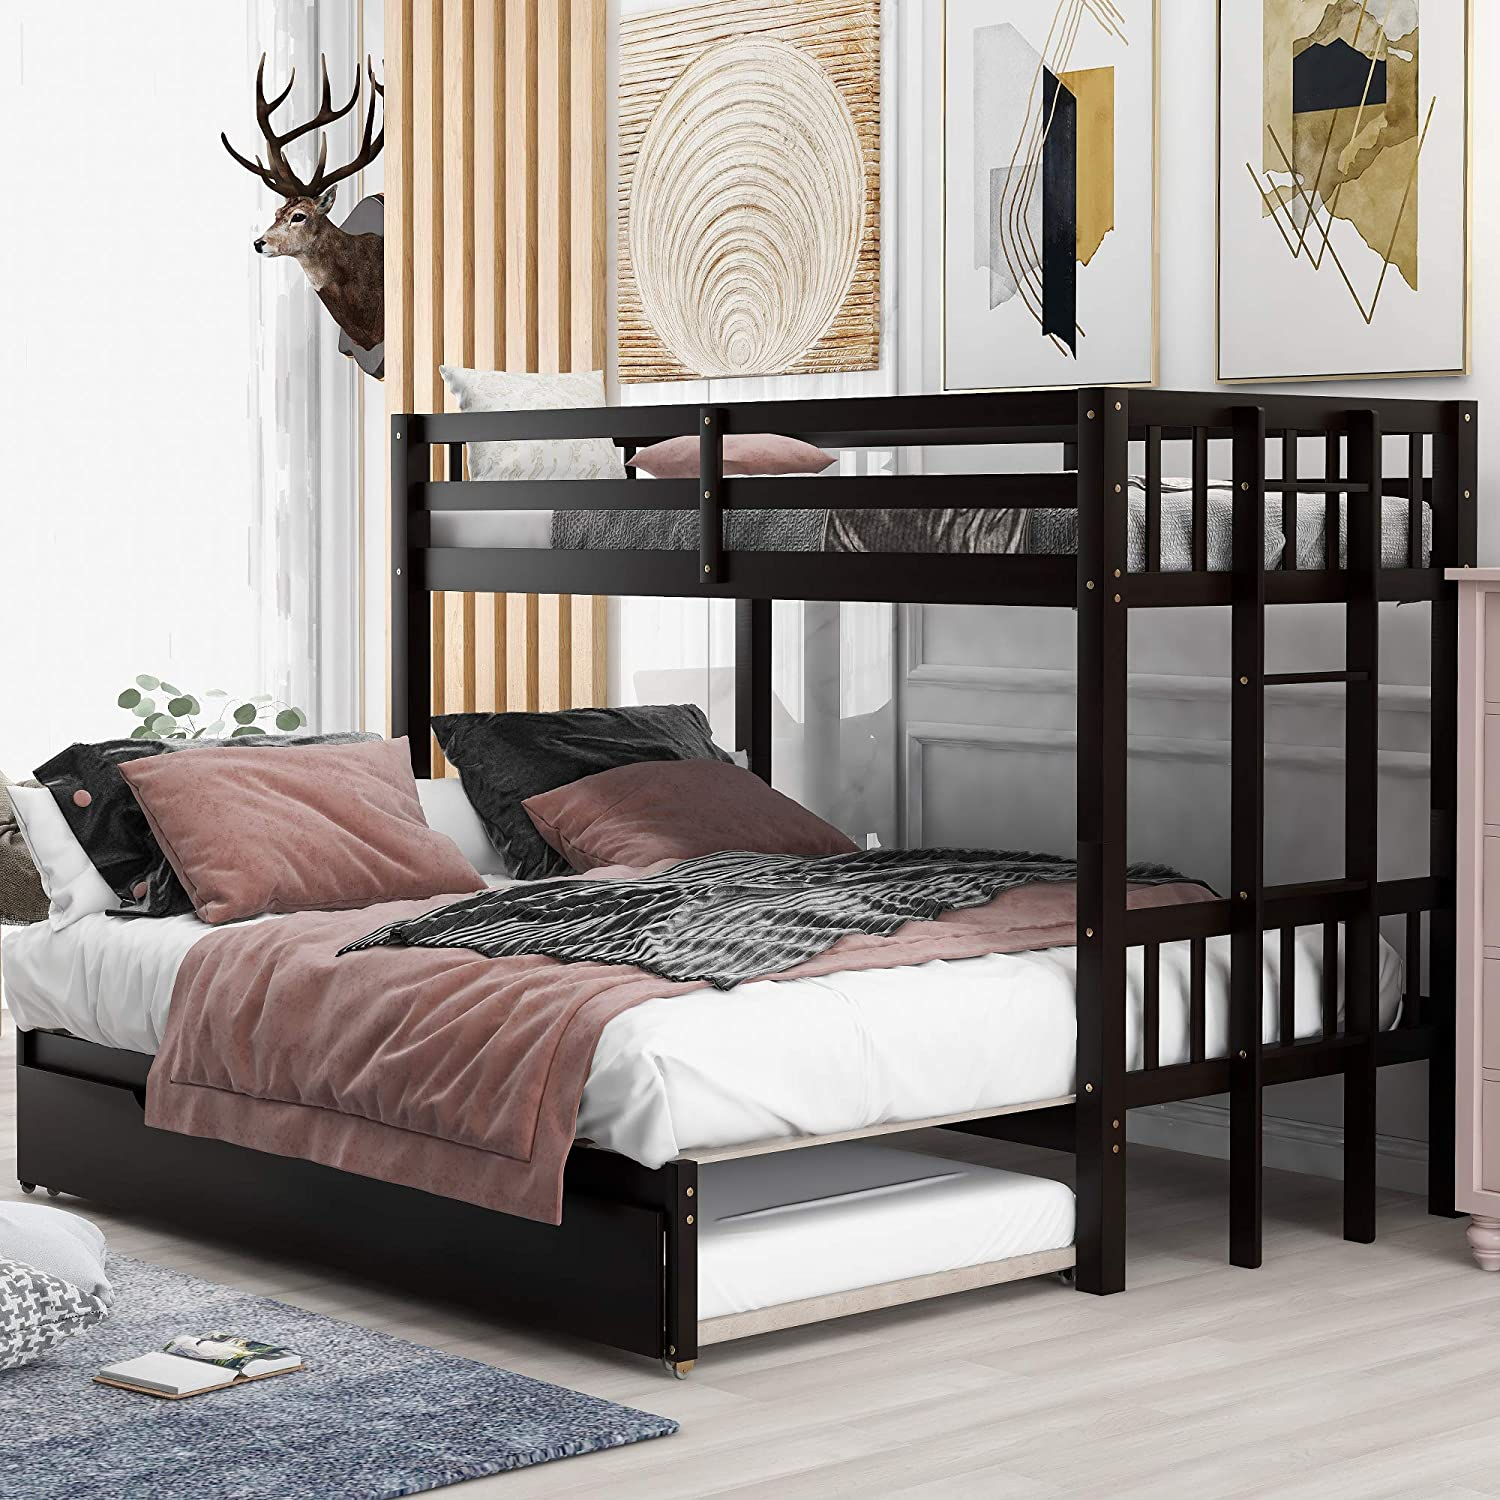 Amazon Com Twin Over Pull Out Bunk Bed With Trundle Wooden Twin Over Twin Full Queen King Bunk Bed Accommodate 4 People Extendable Bunk Beds With Ladder And Safety Rail Espresso Kitchen Dining